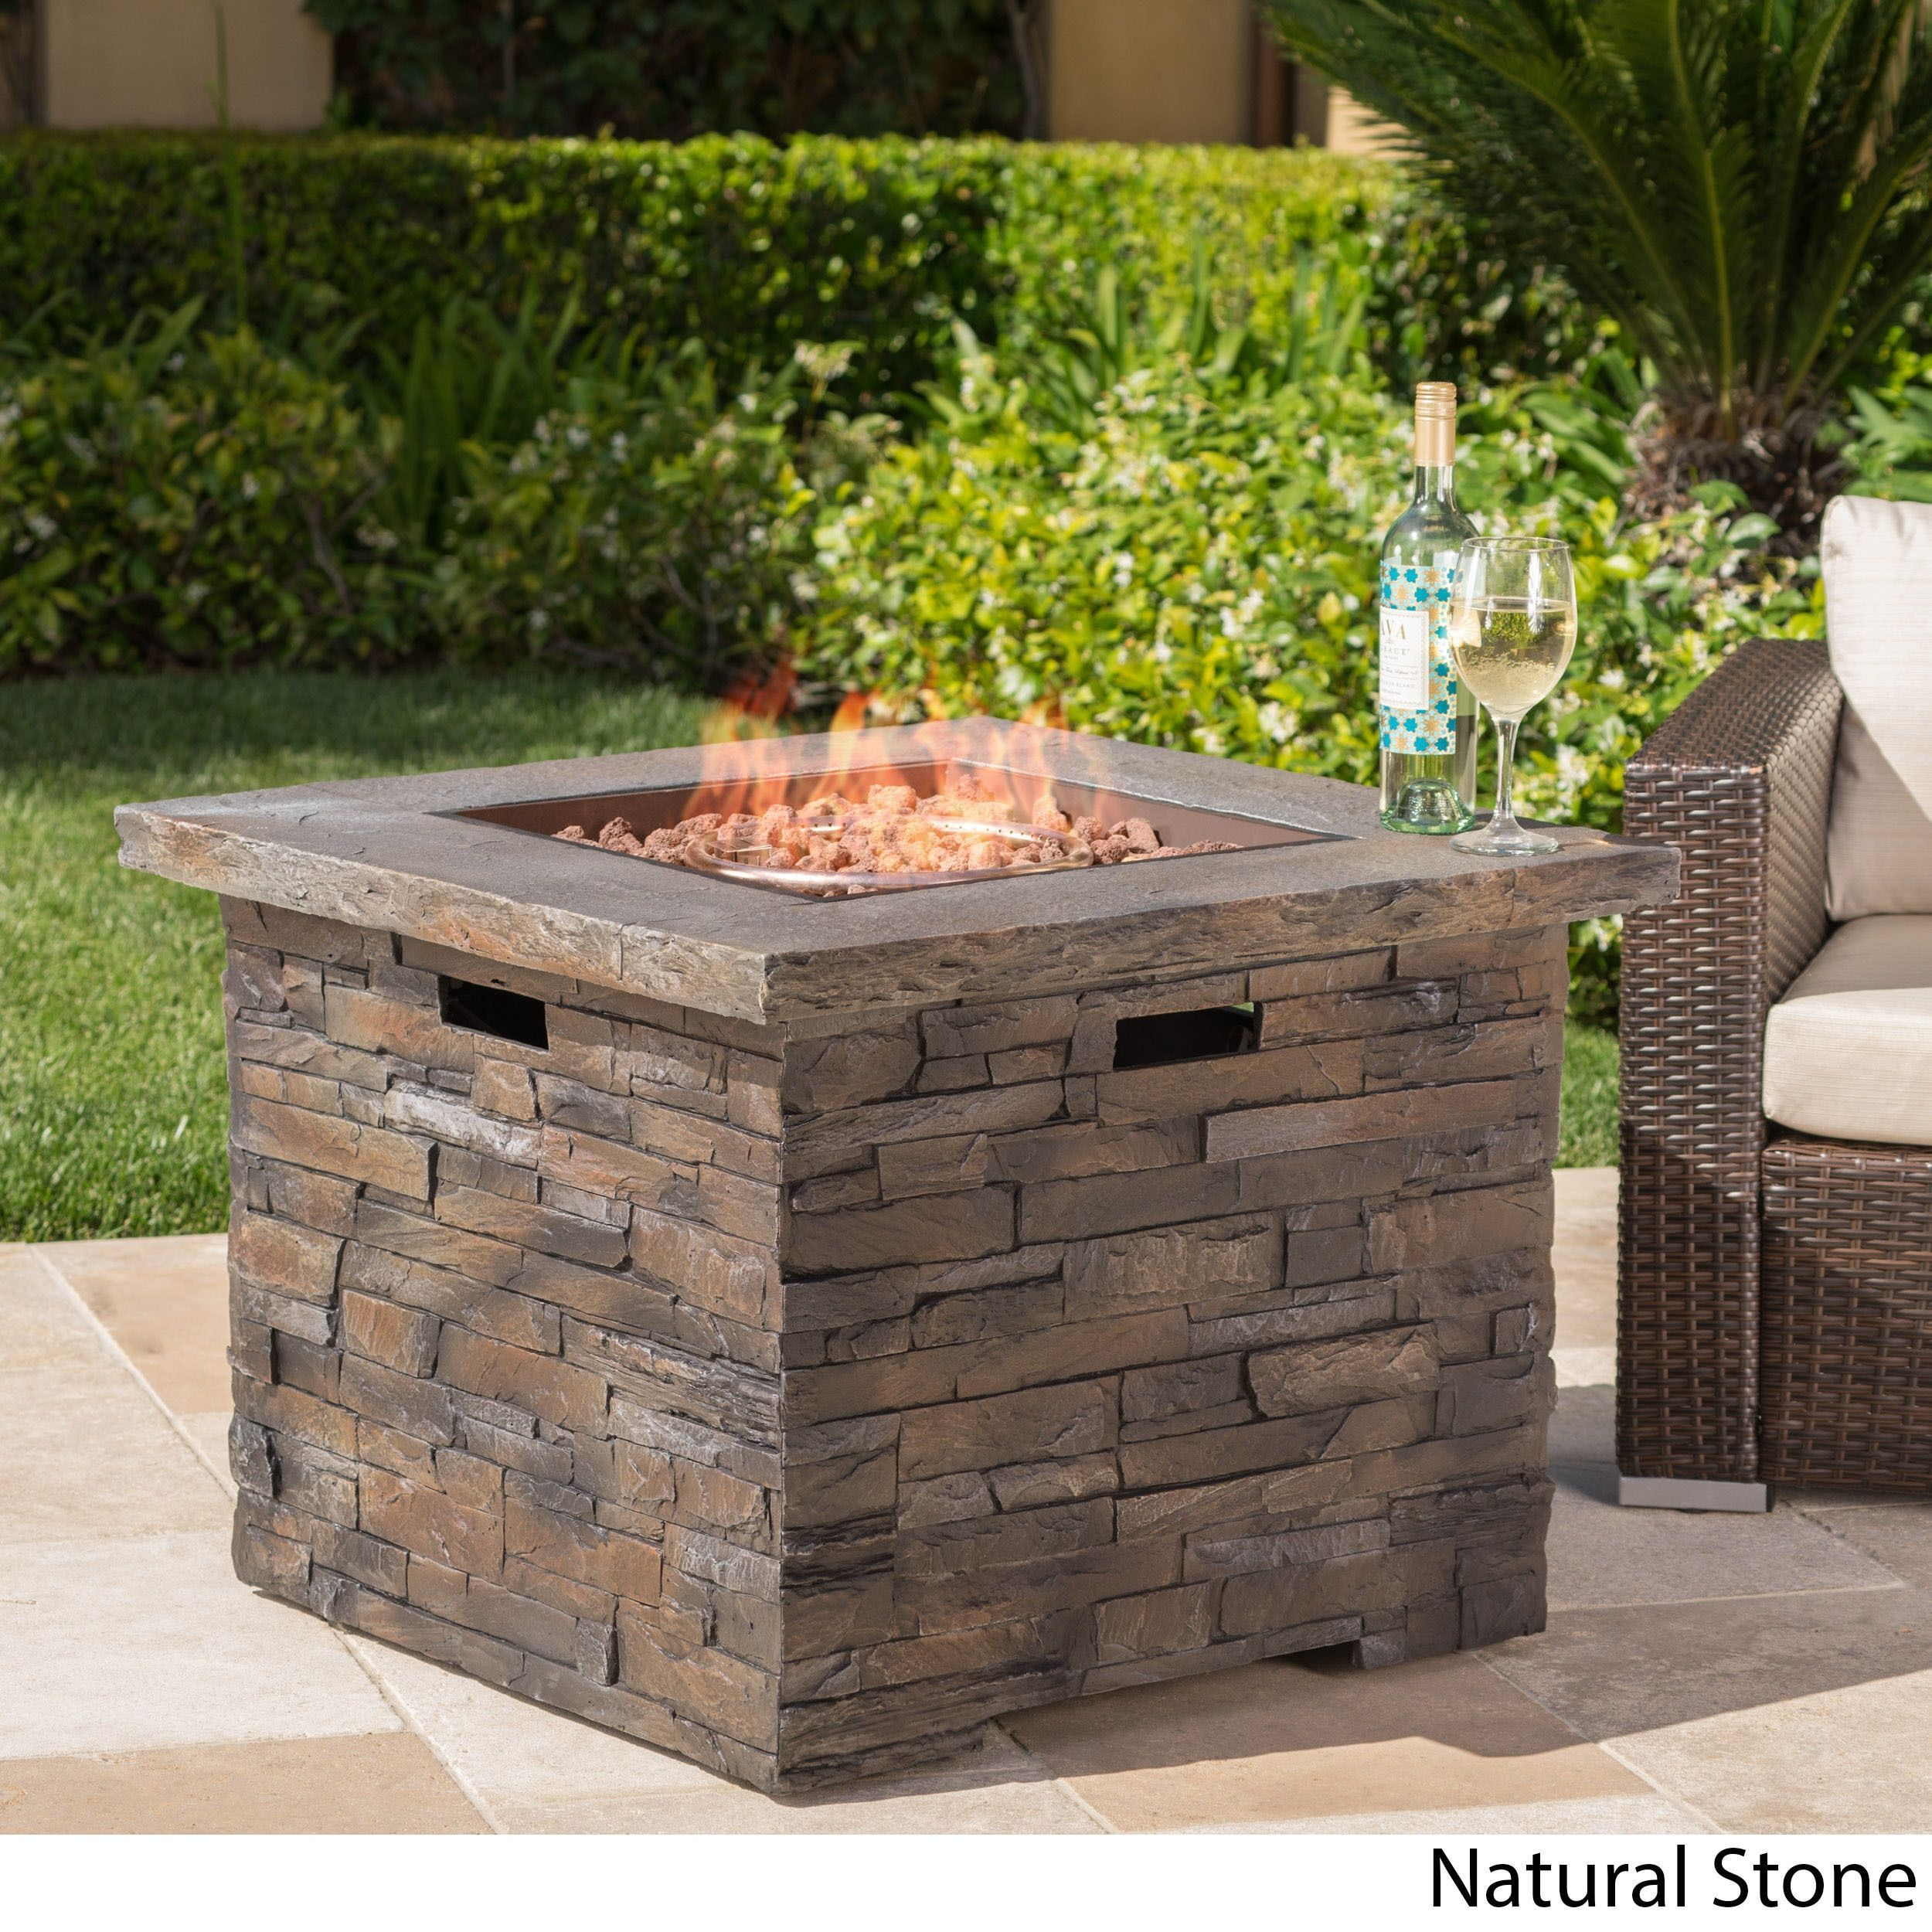 4faefa311668bbaa07c2e188c02d2bf7 Top Result 50 Awesome Rustic Fire Pit